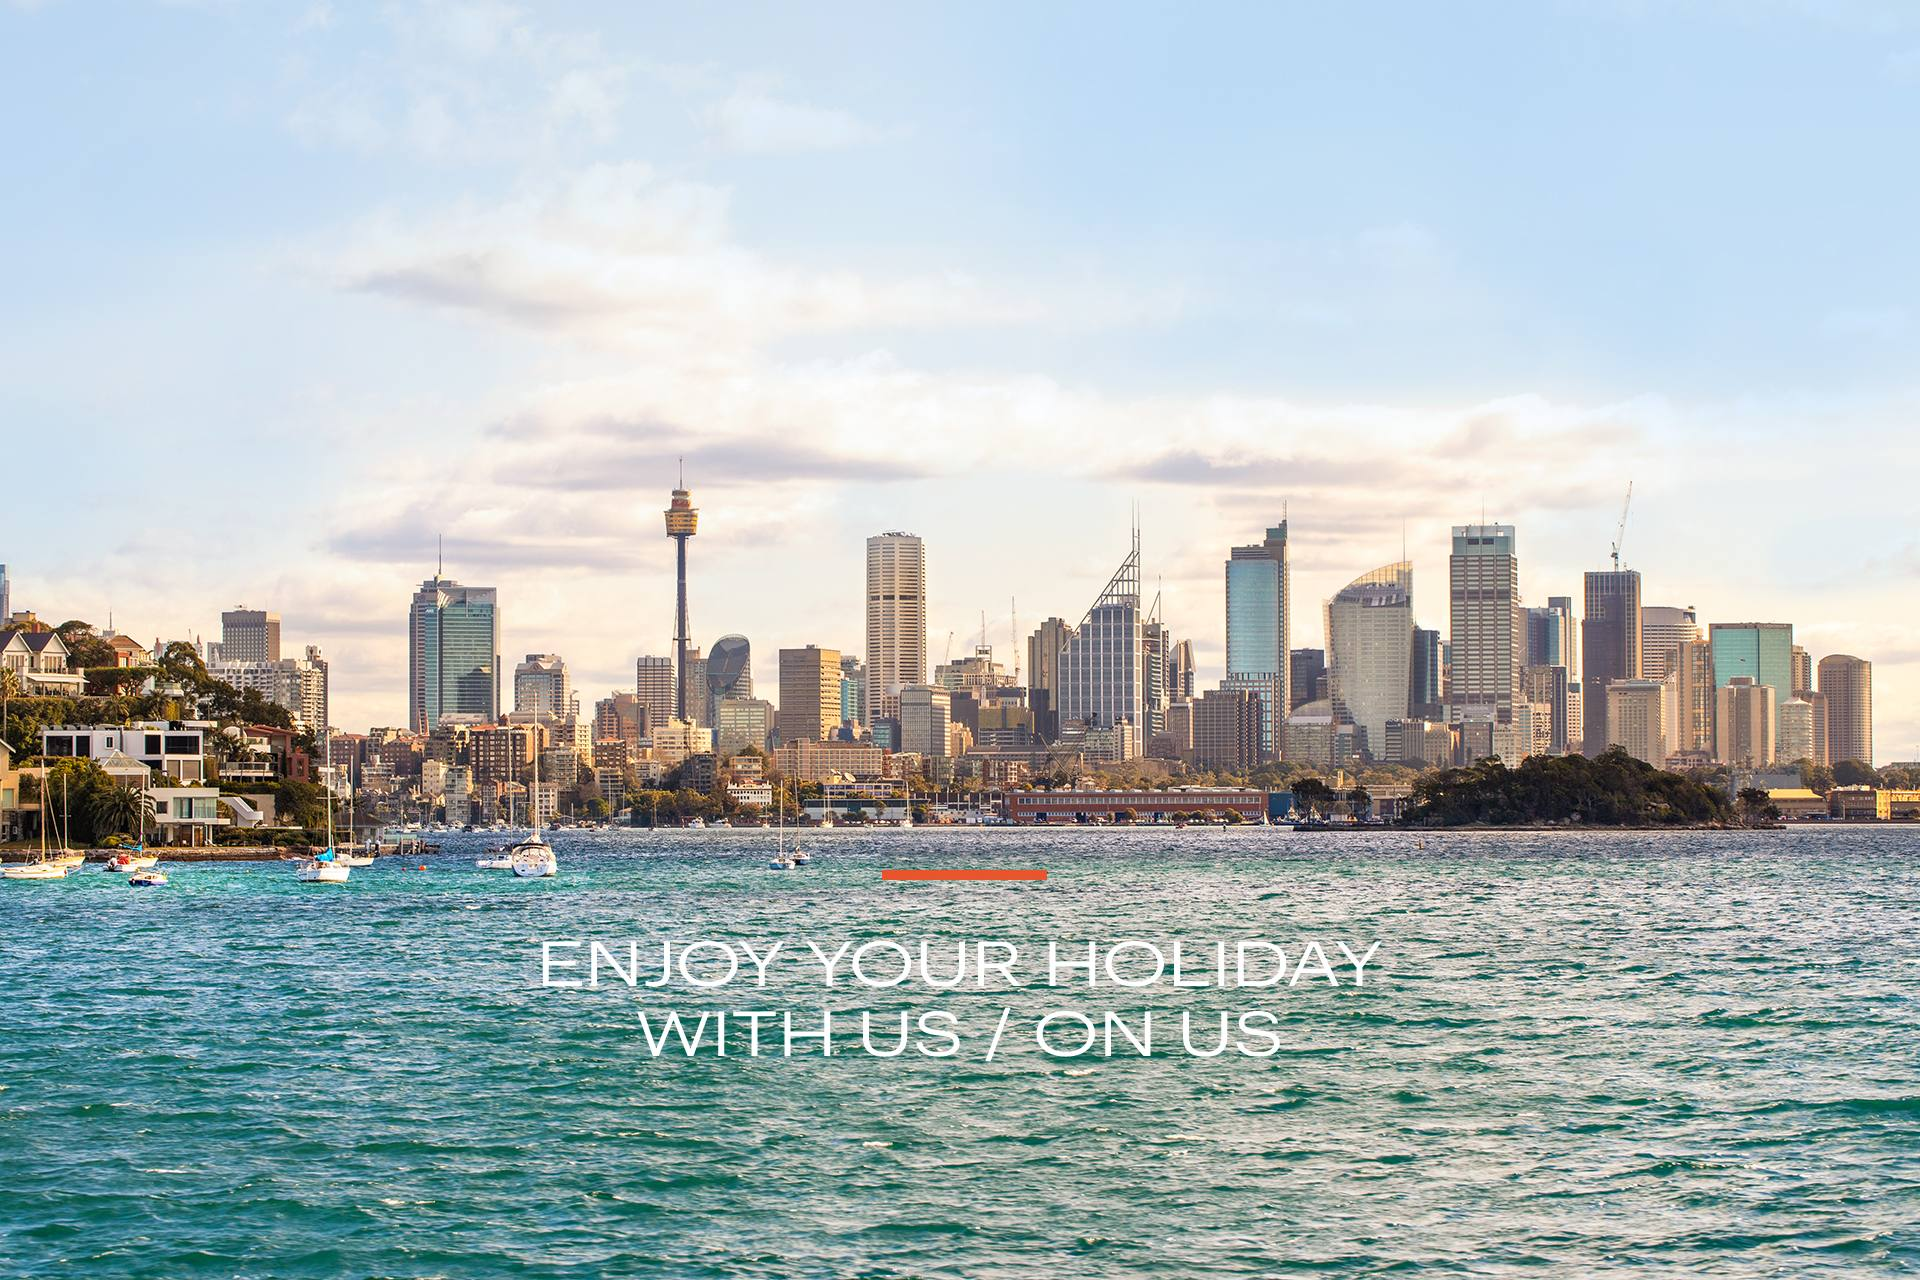 Holiday With Us / On Us │10% OFF IHG Members